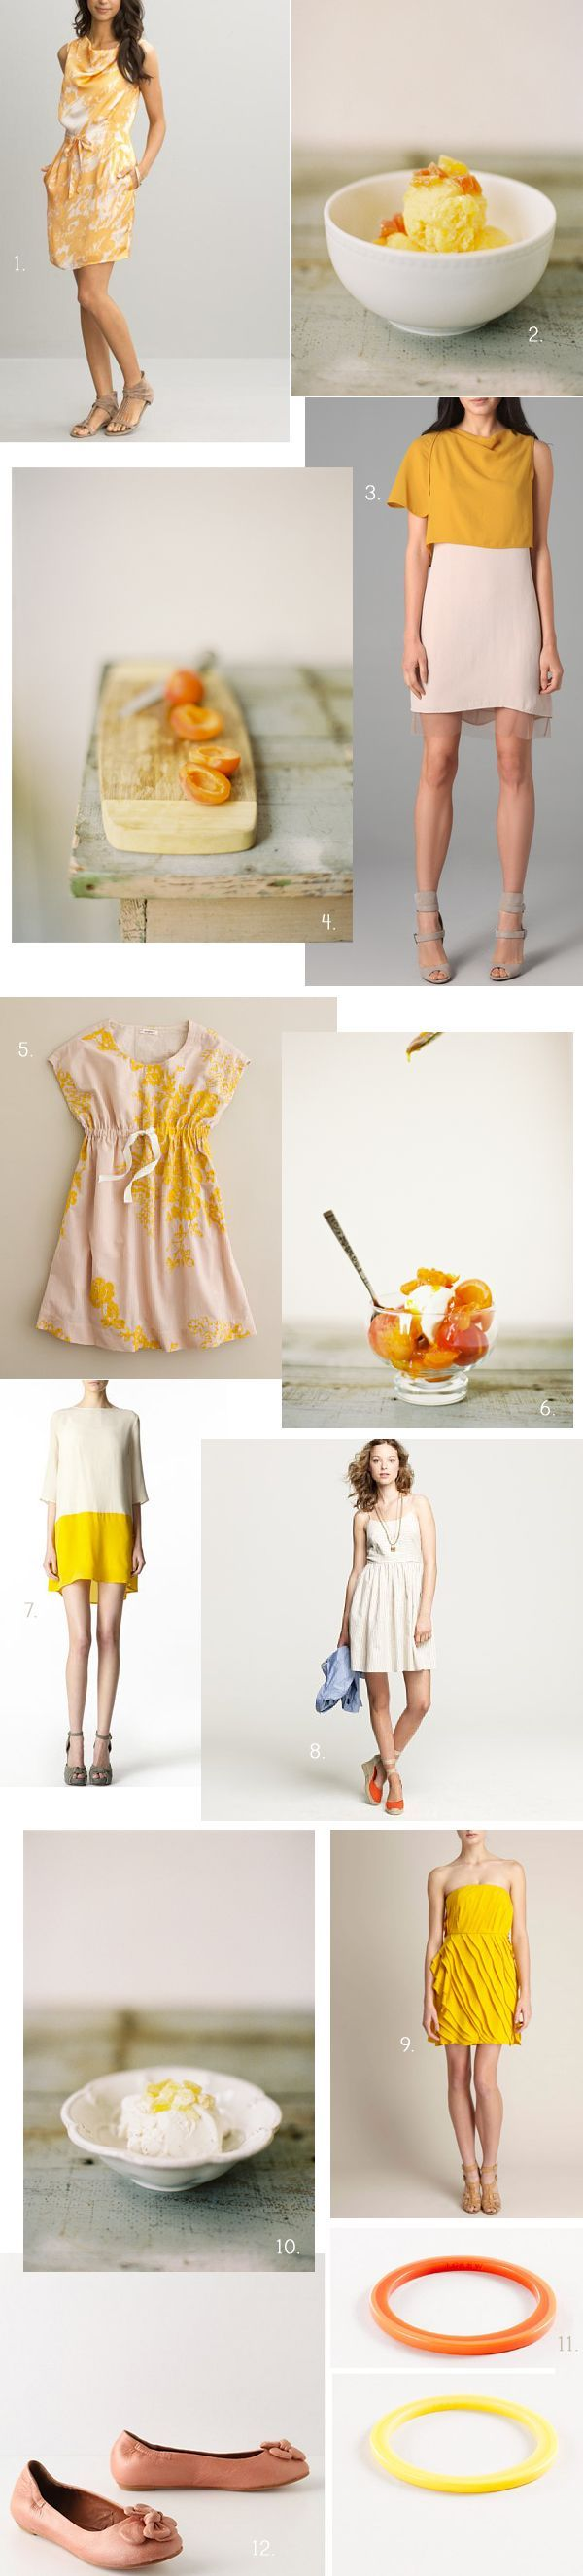 INSPIRATION: Apricots & Ice Cream Wedding Ideas